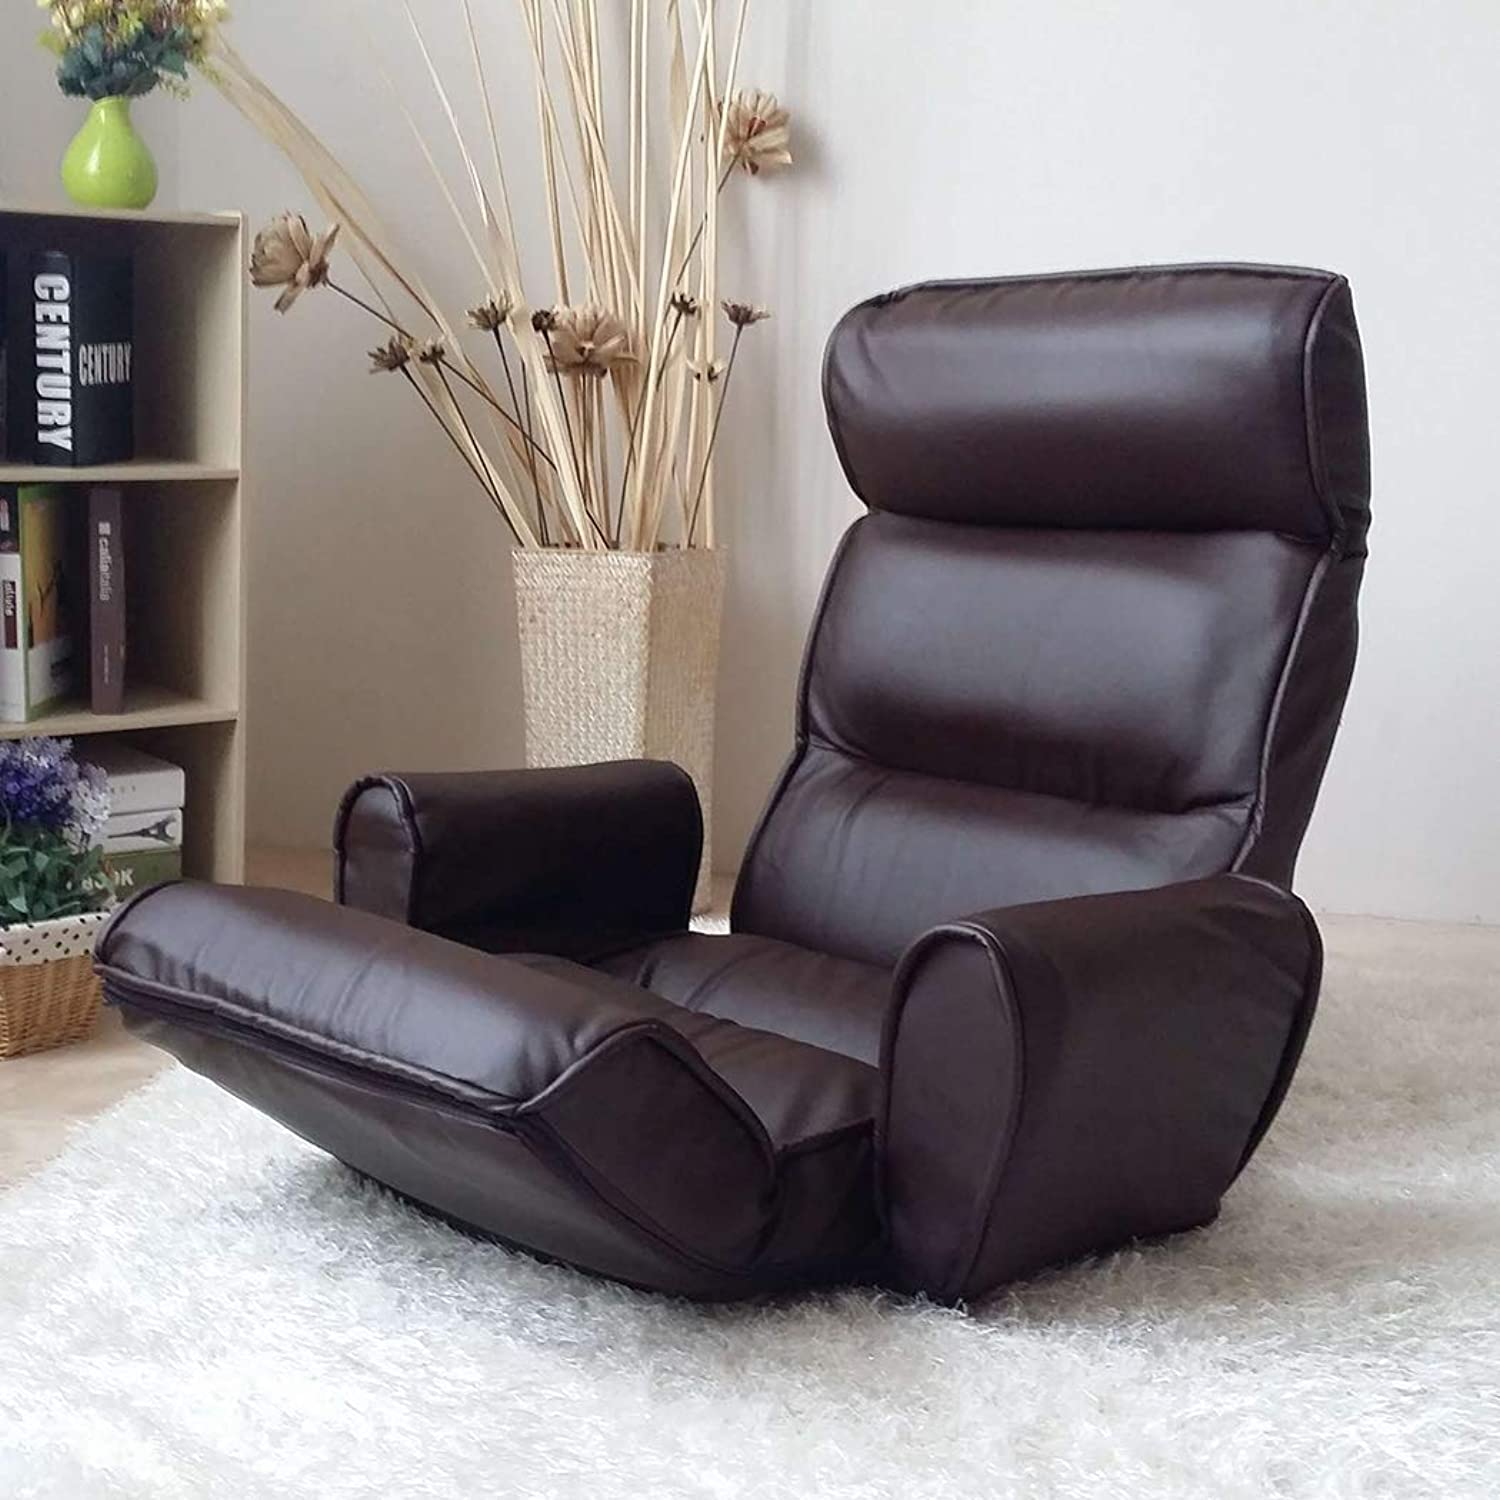 Lovicool Lazy Couch Folding Chair Bedroom Computer Chair Small Sofa Window seat Folding Chair Longer Washable Lounge Chair